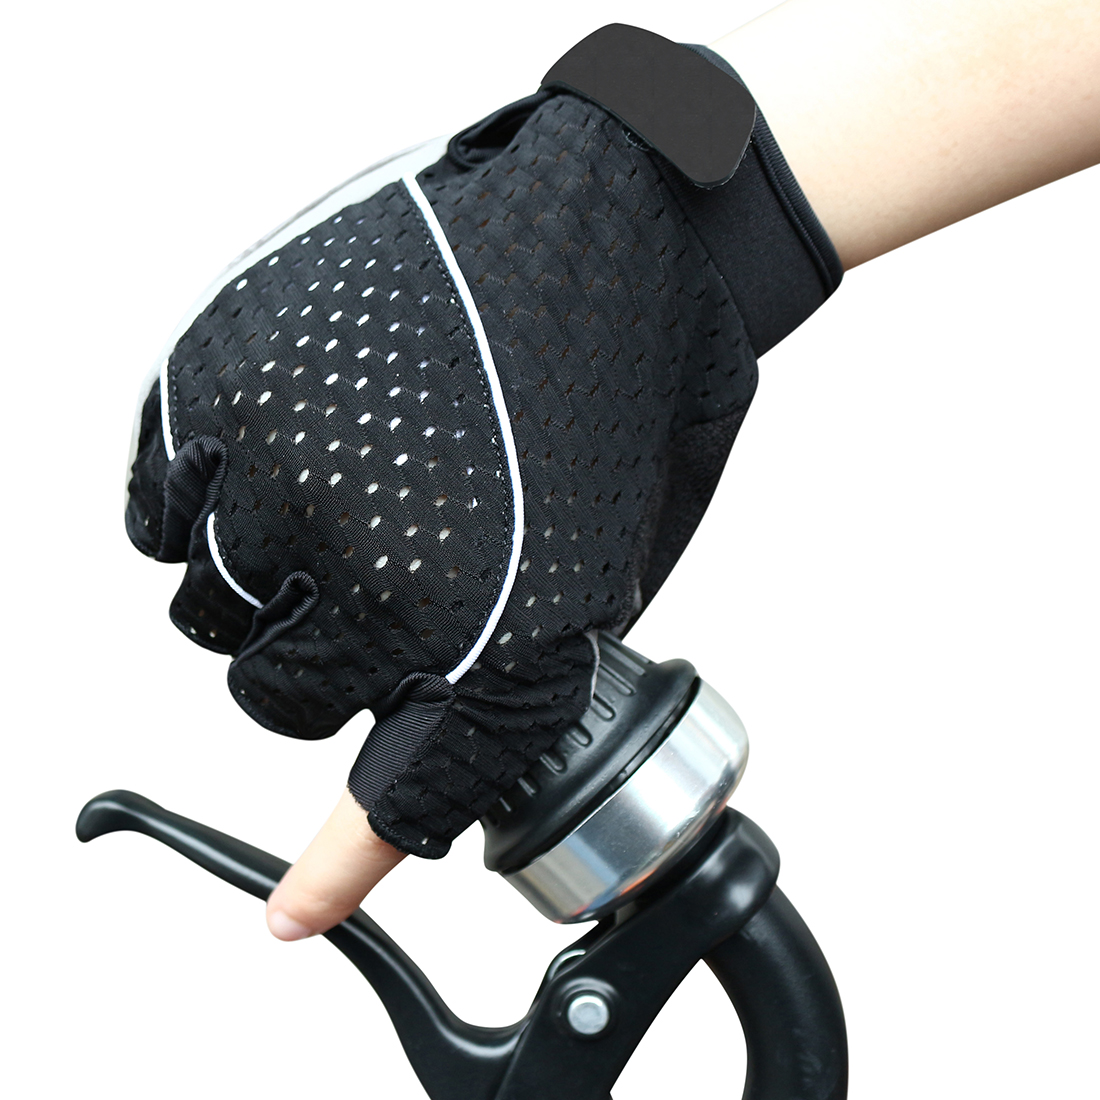 Unique Bargains Unisex Outdoor Bike Riding Cycling Gloves Half Finger Summer Anti-slip